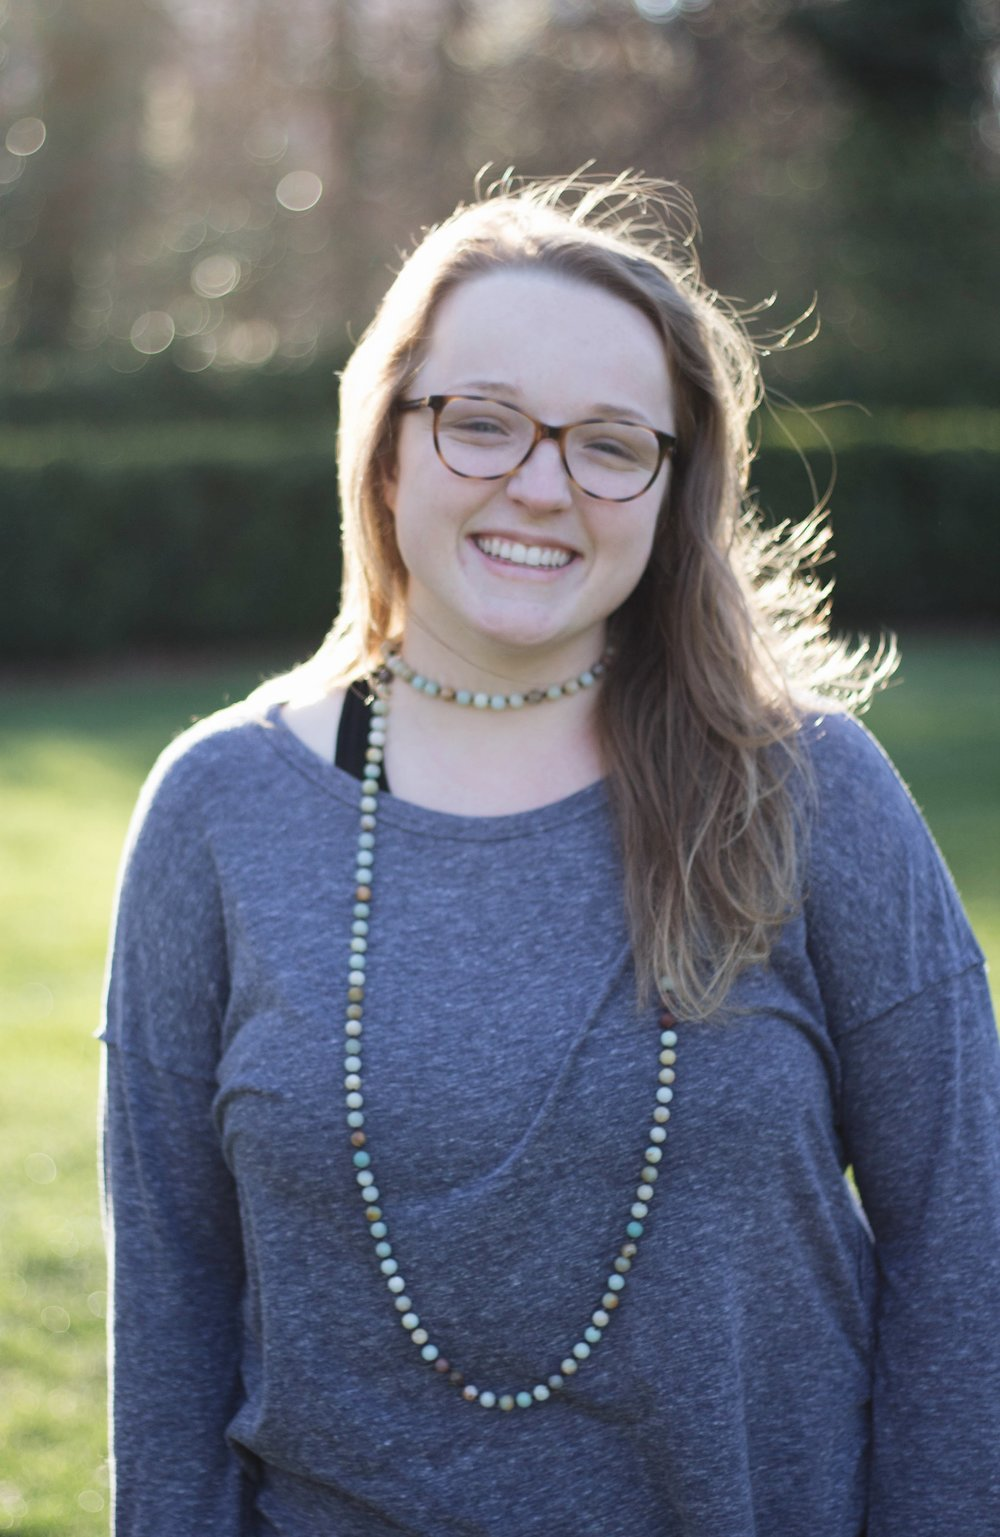 Sarah Lundgren is a sophomore from Winston-Salem, N.C. studying Public Relations and American history. Contact her at sarlund@live.unc.edu to get involved with the Superhero Project publishing committee.